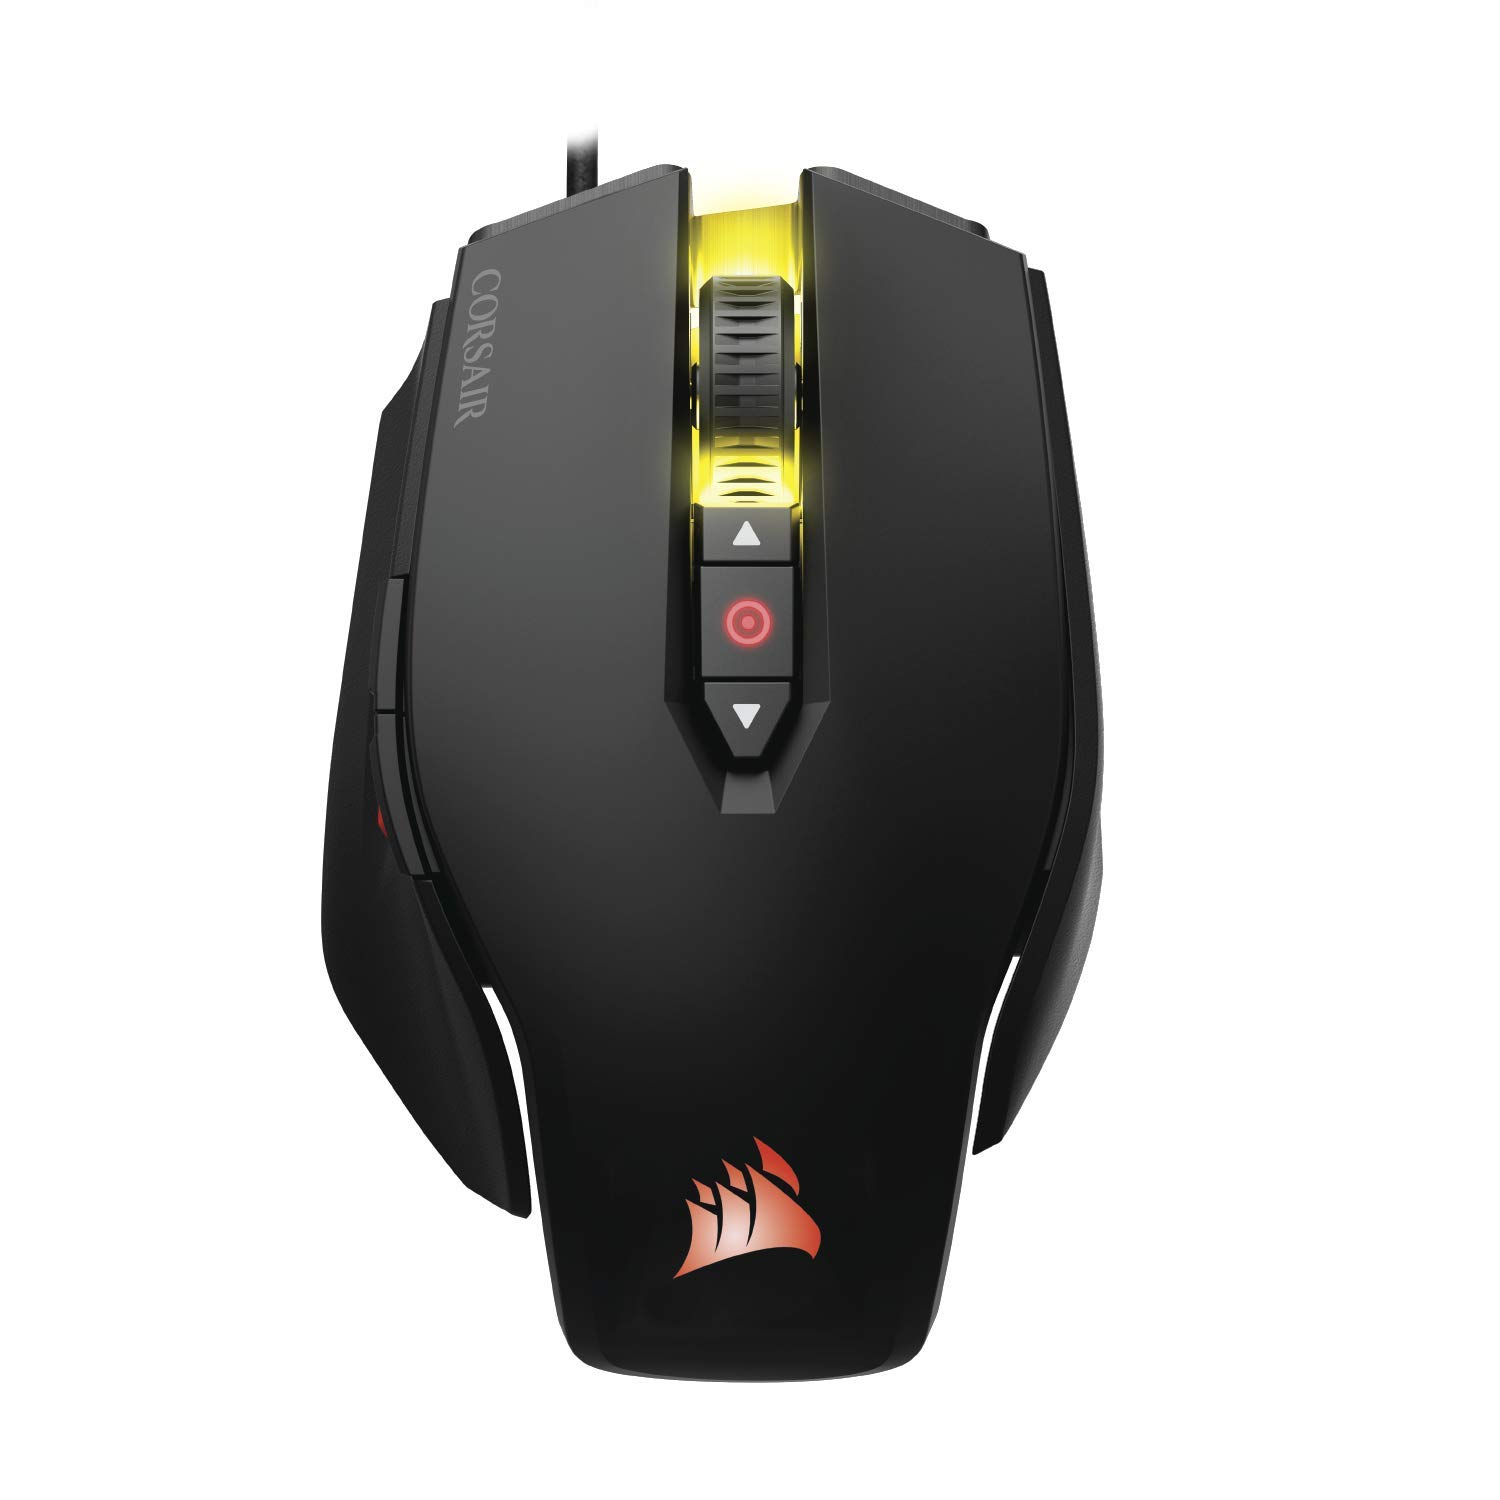 Top 10 Best Gaming Mouse Under $50 – Buy Gaming Mice for Cheap Price 10